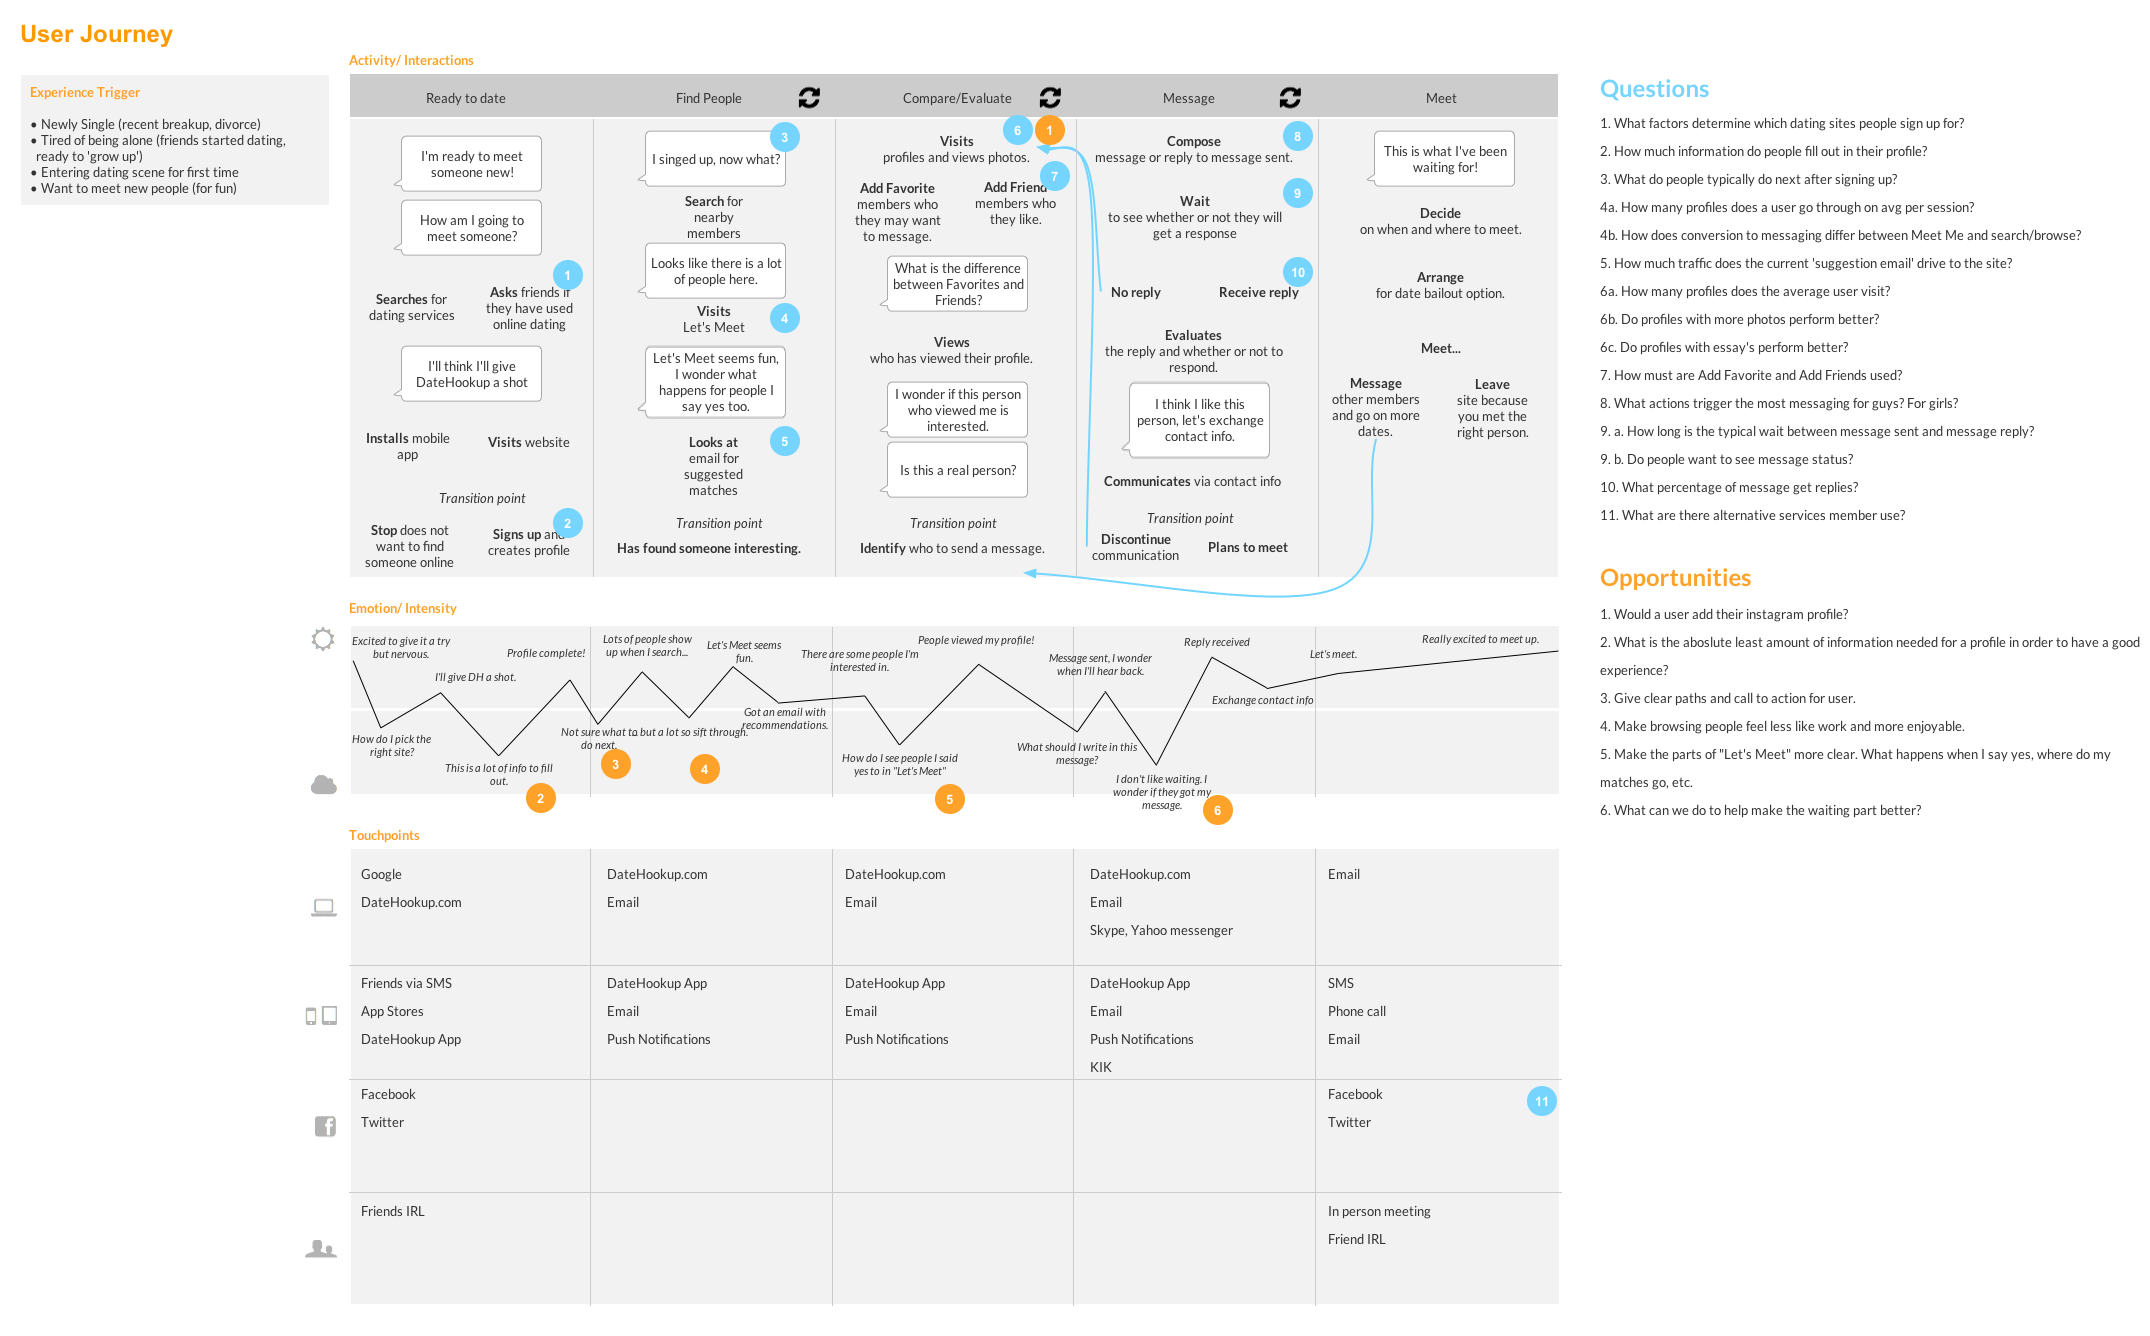 A chart trying to encapsulate the user's journey through a dating website. Questions reflect the original experience while opportunities address some potential ideas to improve the experience.